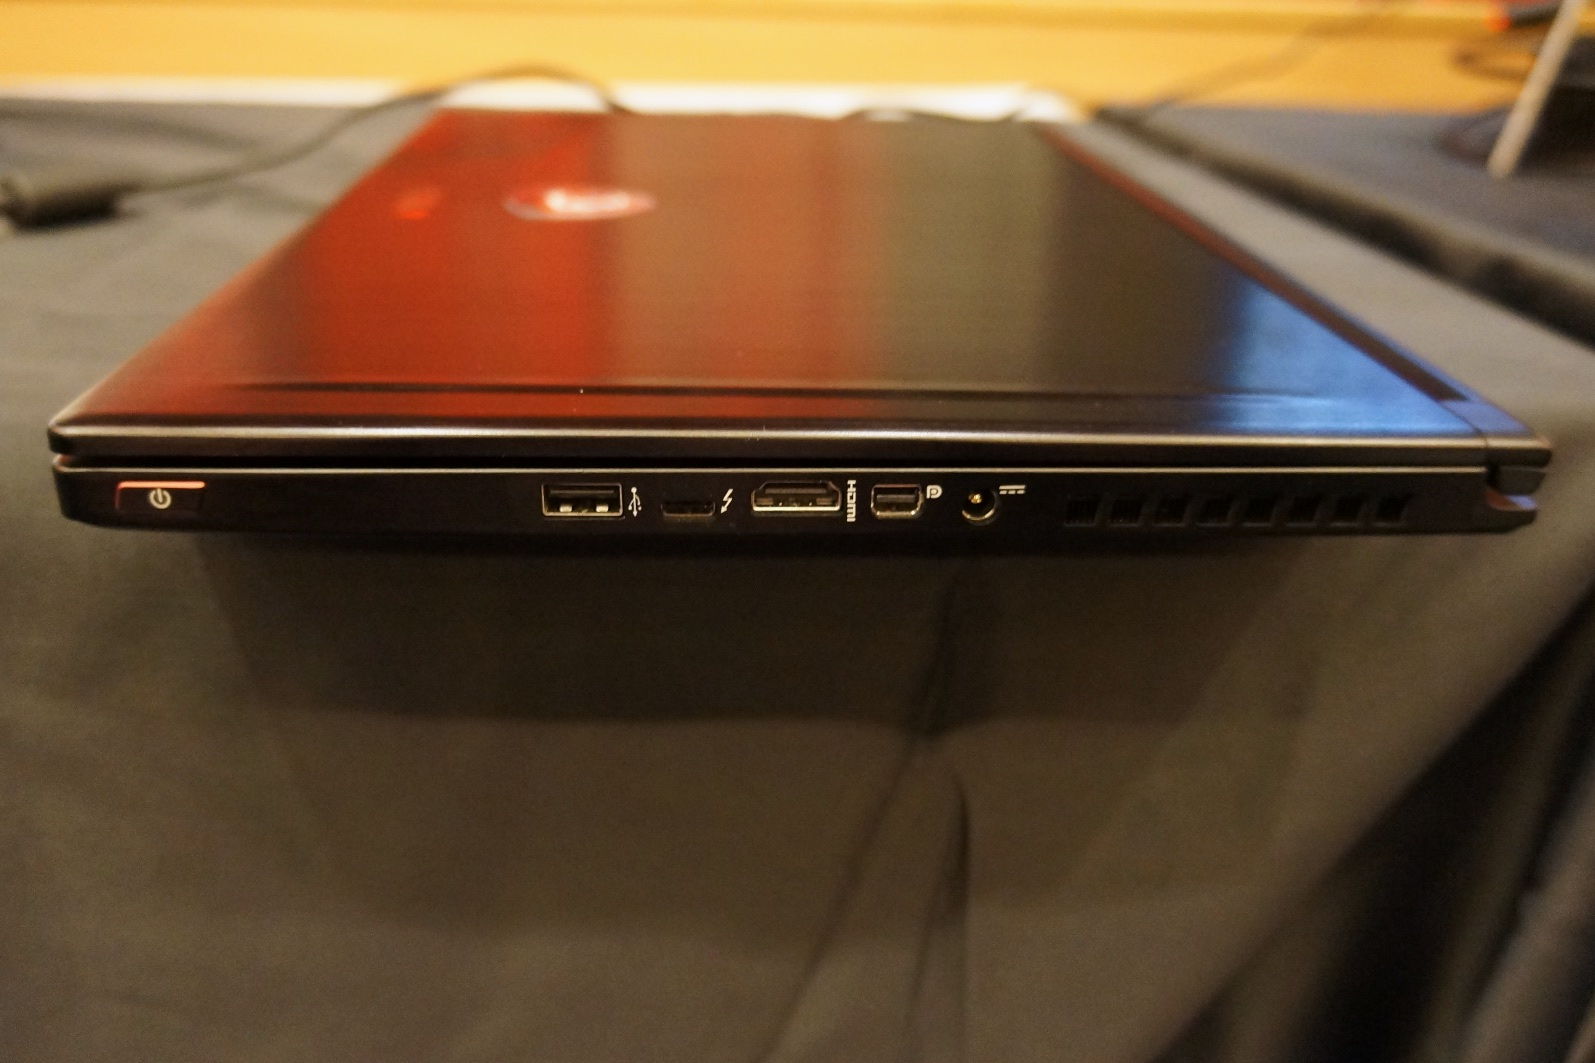 Msi Shows Off Gs63 Stealth Gaming Notebook With